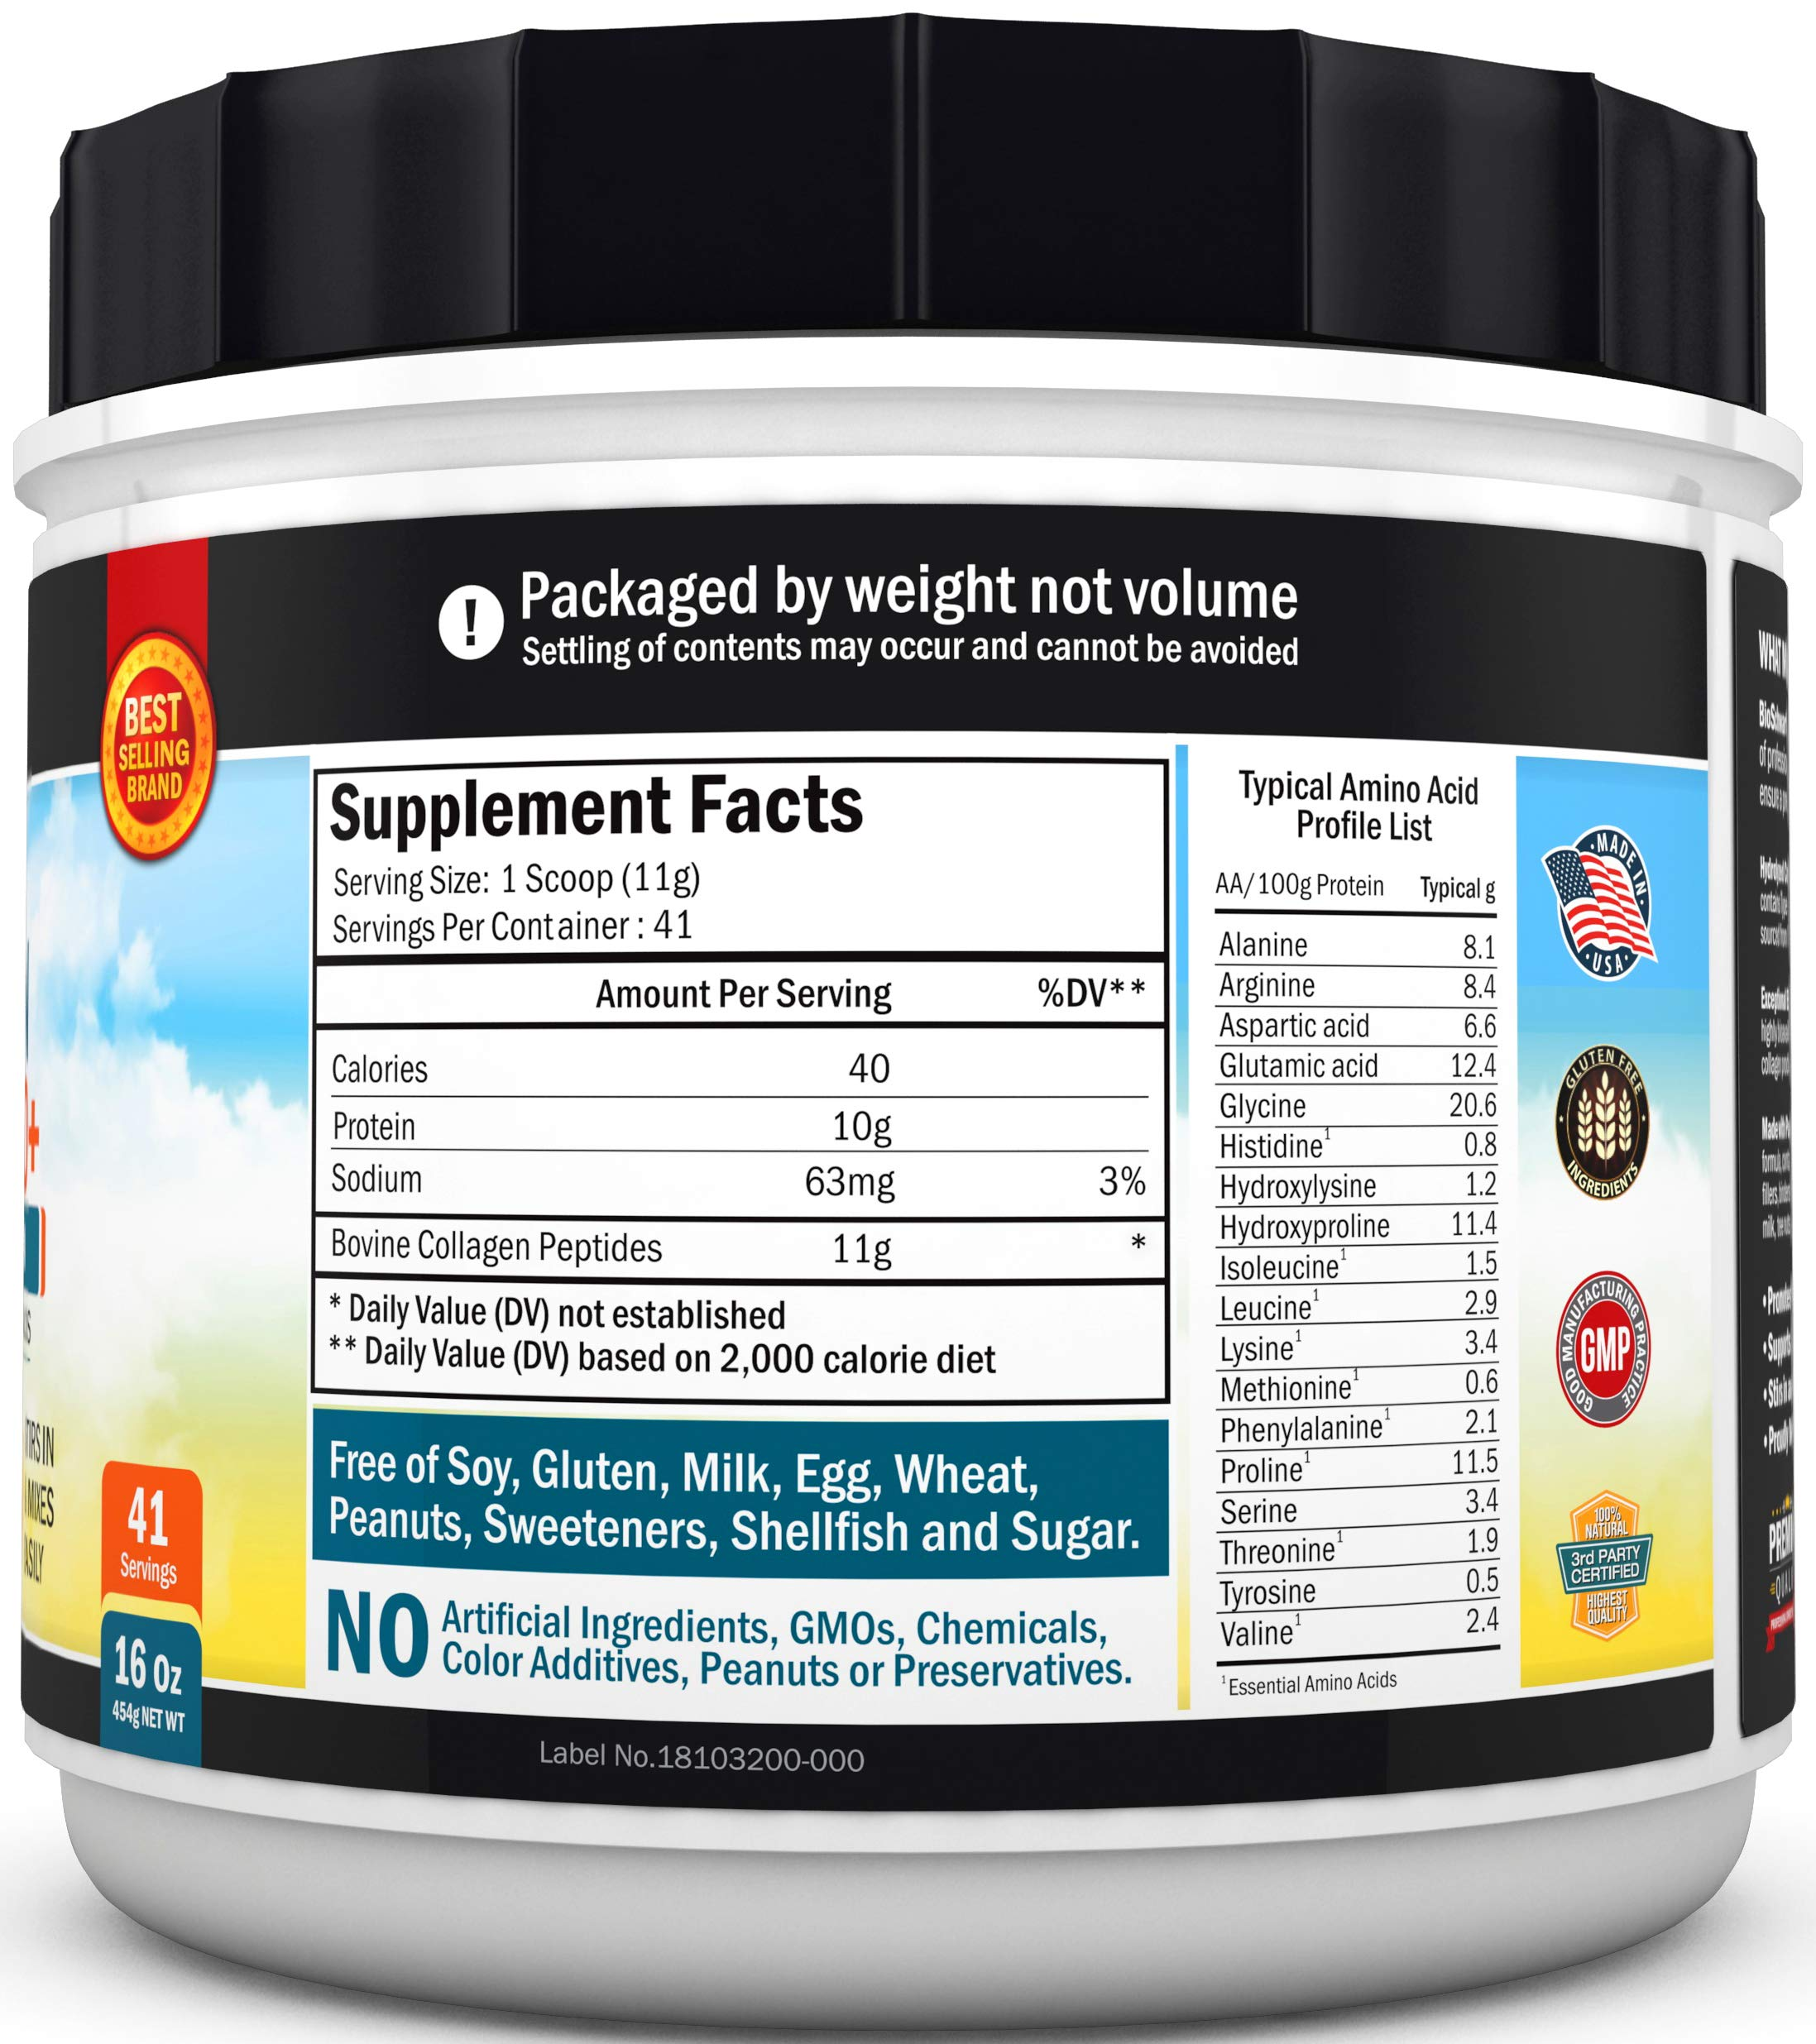 Collagen Peptides Protein Powder - Grass Fed, Pasture Raised with Aminos - Promotes Healthy Skin Hair & Nails - Bone & Joint Support - Hydrolyzed, Unflavored, Non GMO, Gluten Free - Easy to Mix -16 oz by BioSchwartz (Image #3)